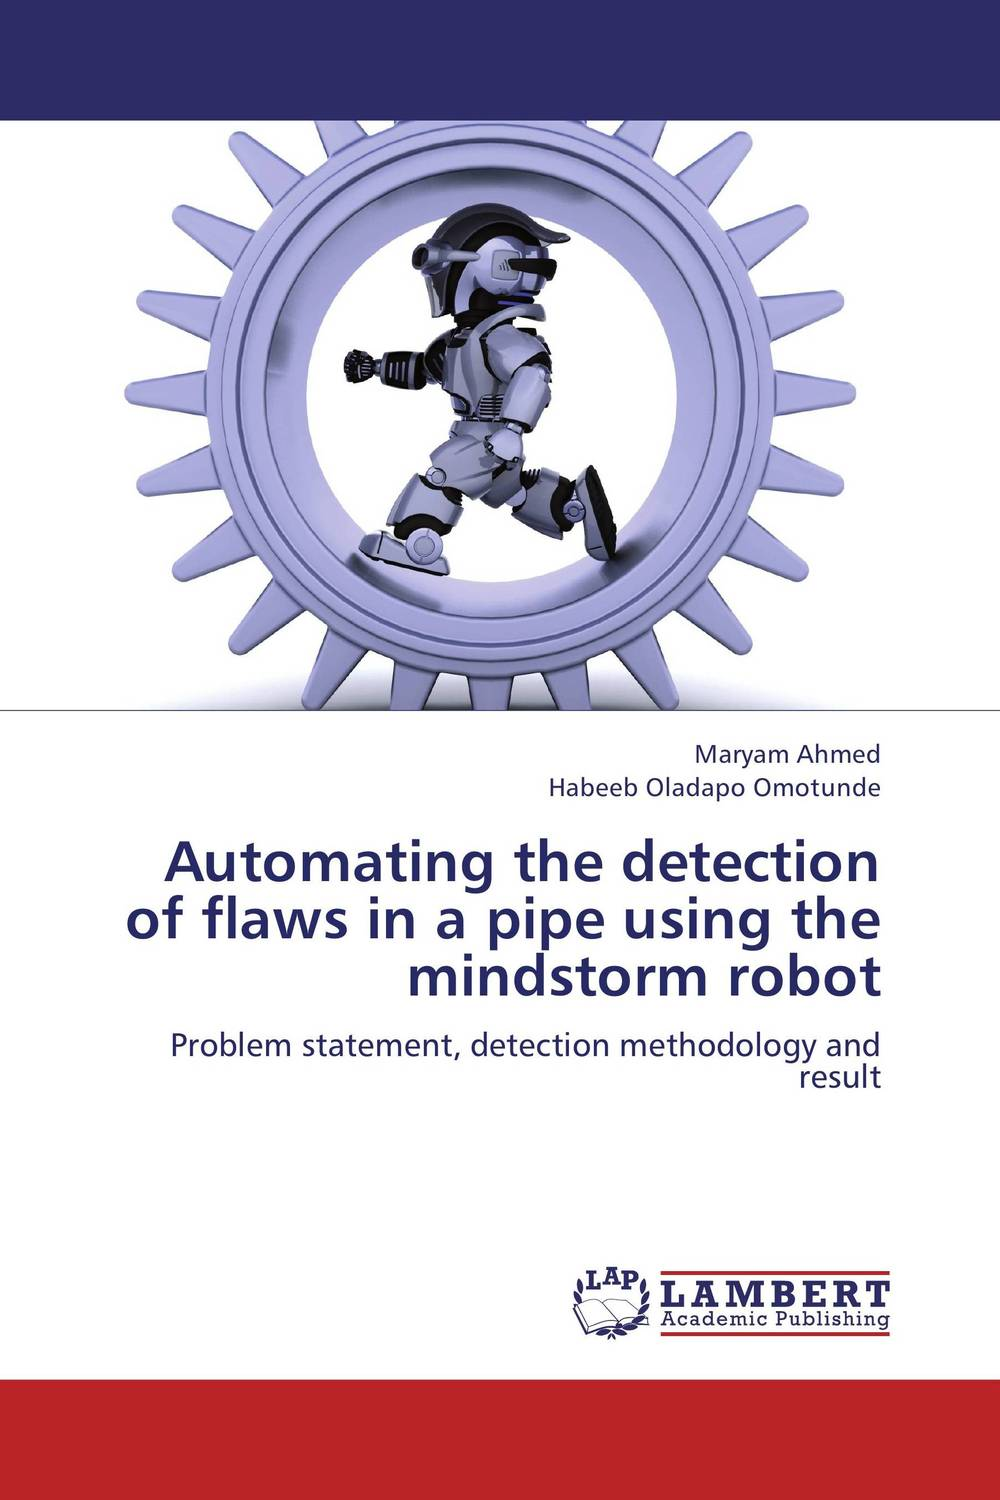 Automating the detection of flaws in a pipe using the mindstorm robot adoption of e commerce in nigerian businesses